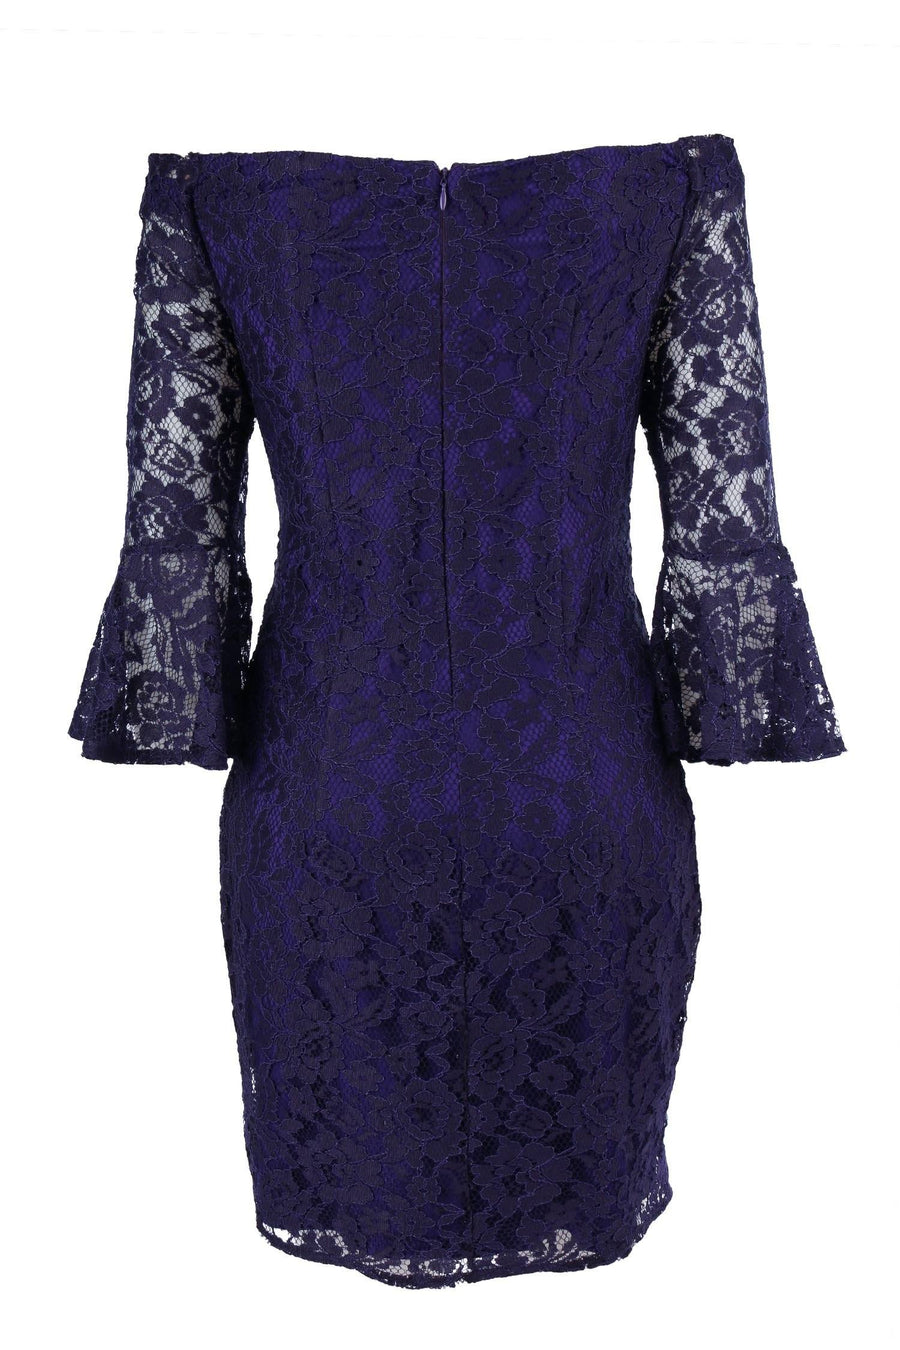 Shop Online Ami Lace Dress by Quba  Frockaholics Dress